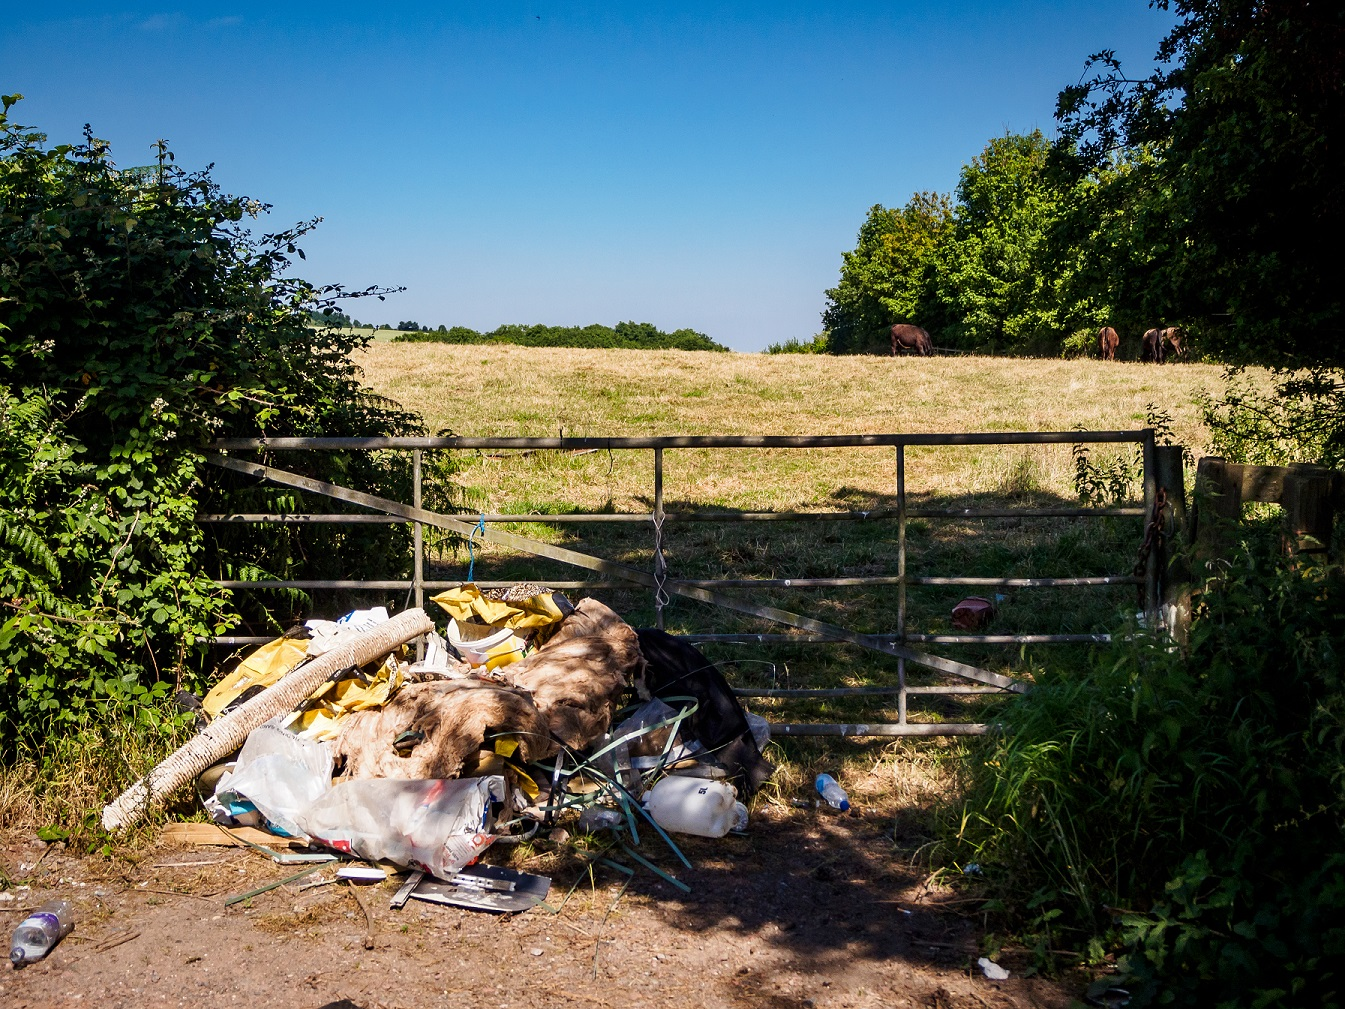 Regions Could See Fly-Tipping Increase by As Much As 70% This Year